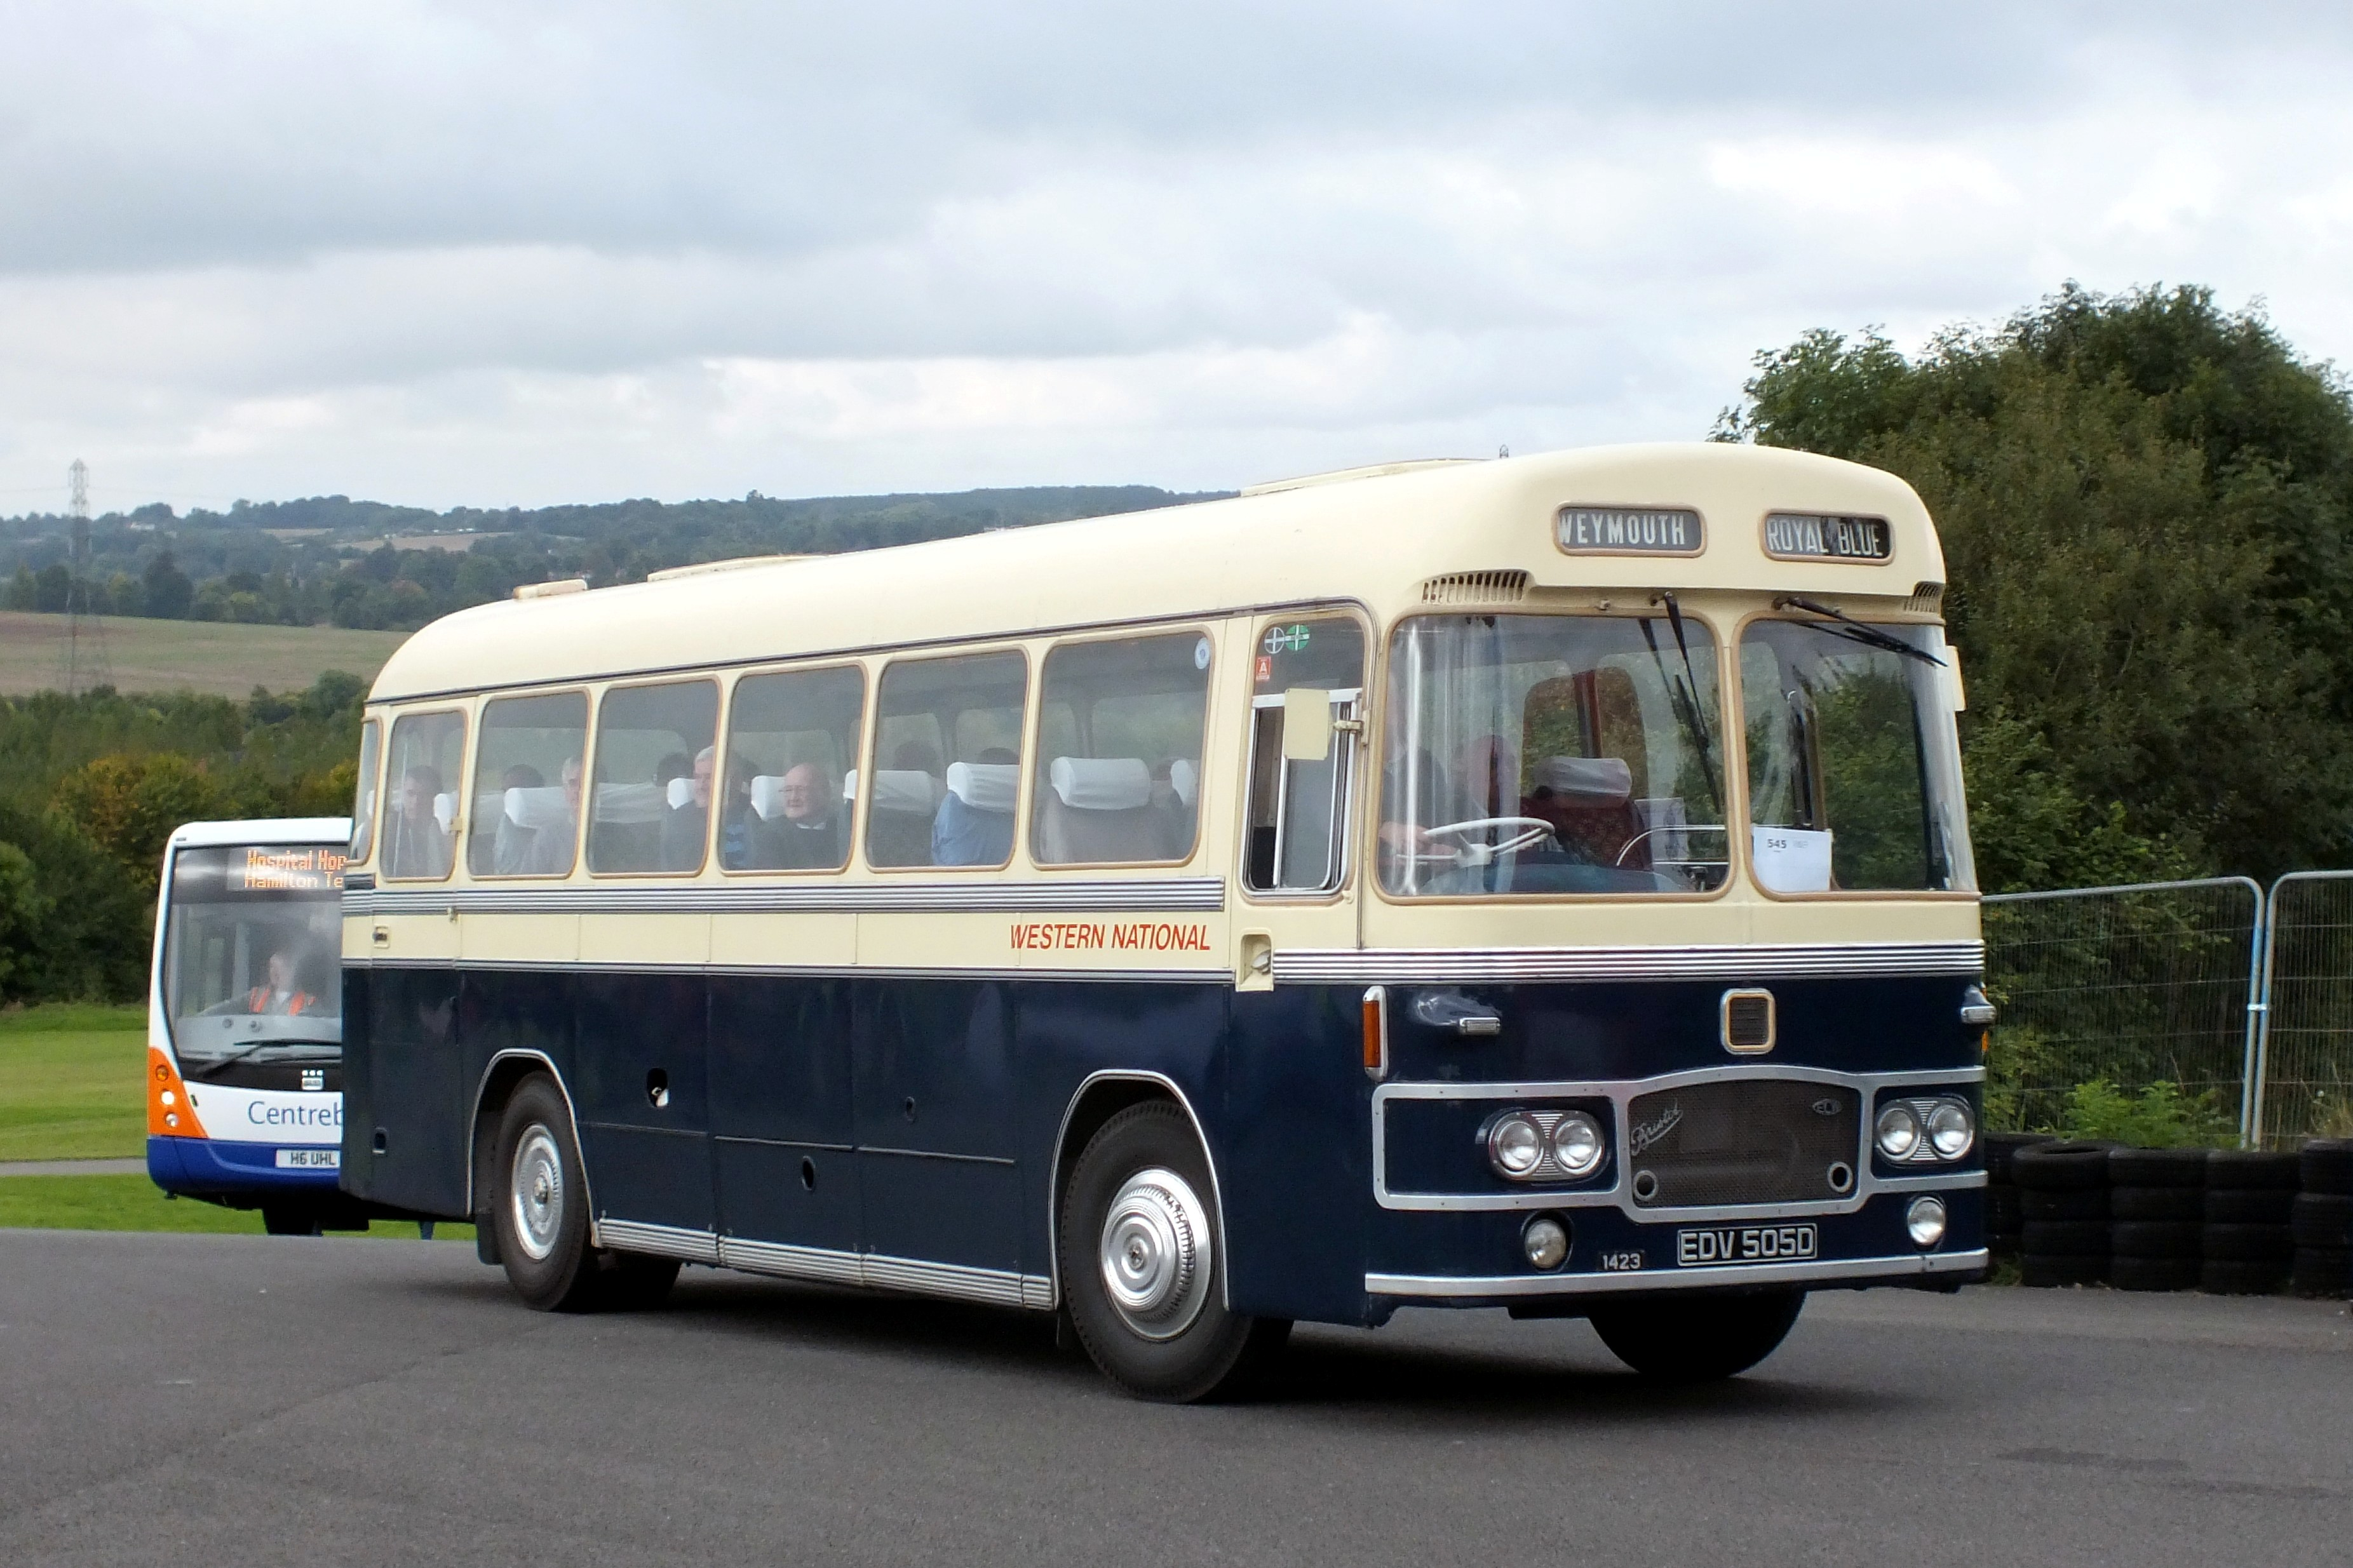 17 September 2017 Showbus, Donington. 387.jpg